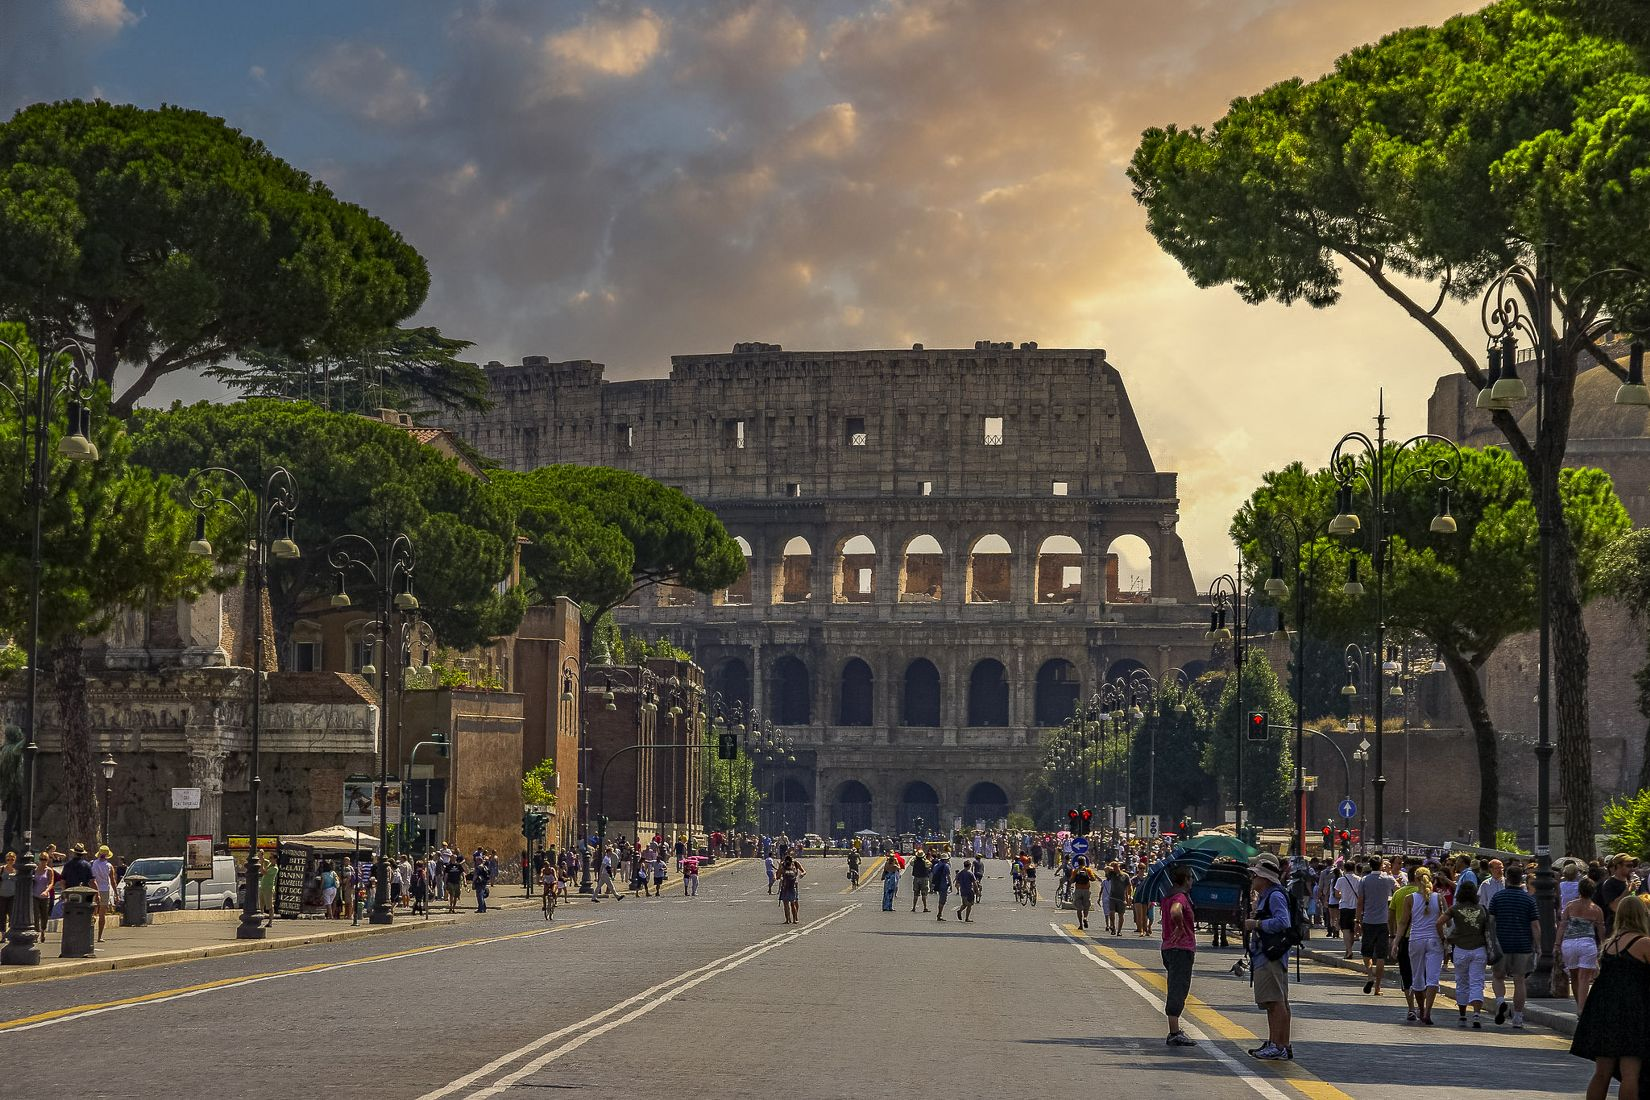 Street to the Colosseum, Rome